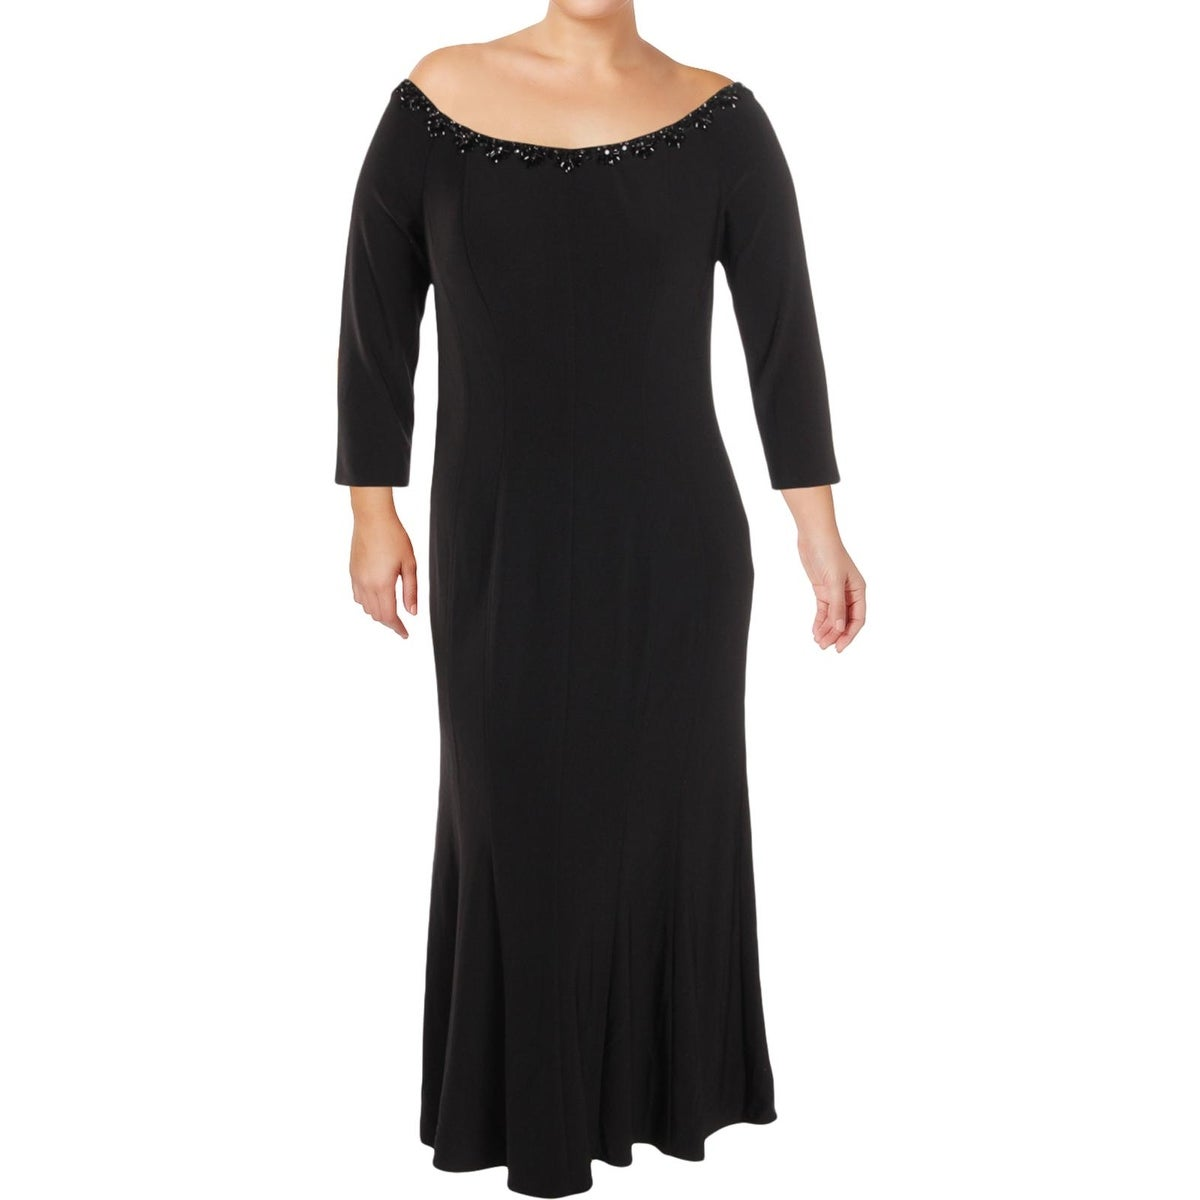 bda3292fad4a Alex Evenings Dresses | Find Great Women's Clothing Deals Shopping at  Overstock